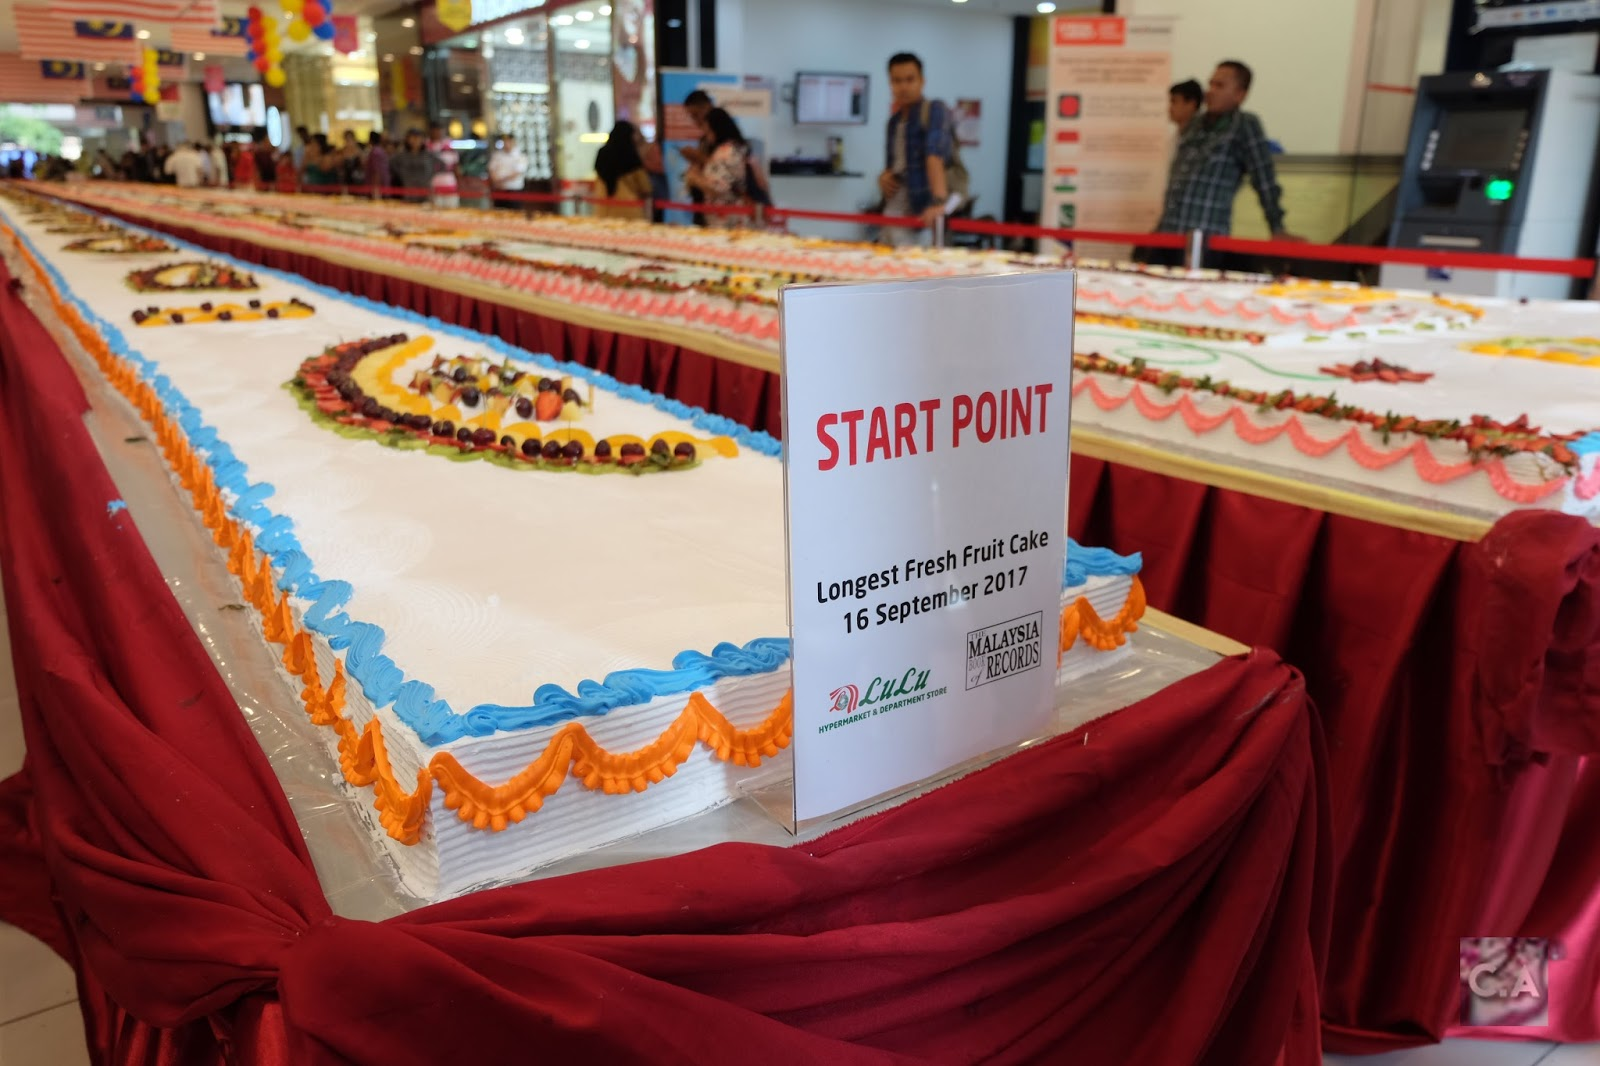 The Longest Fresh Fruit Cake in Malaysia.